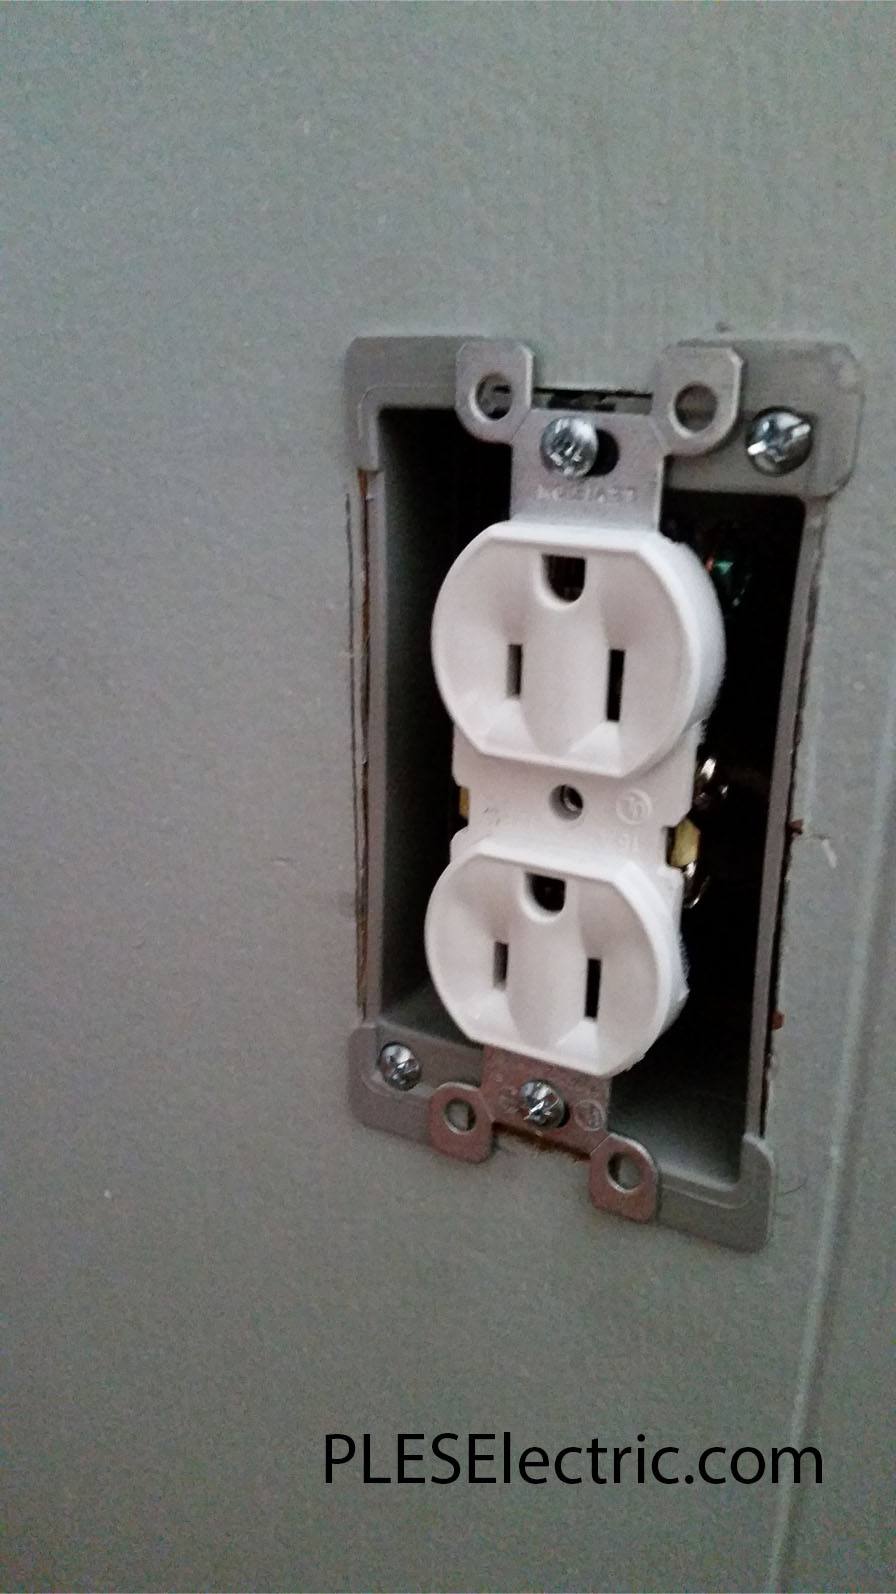 Blog Ples Electric Cpsc Aluminum Wiring Installing An Outlet A Receptacle How To Install